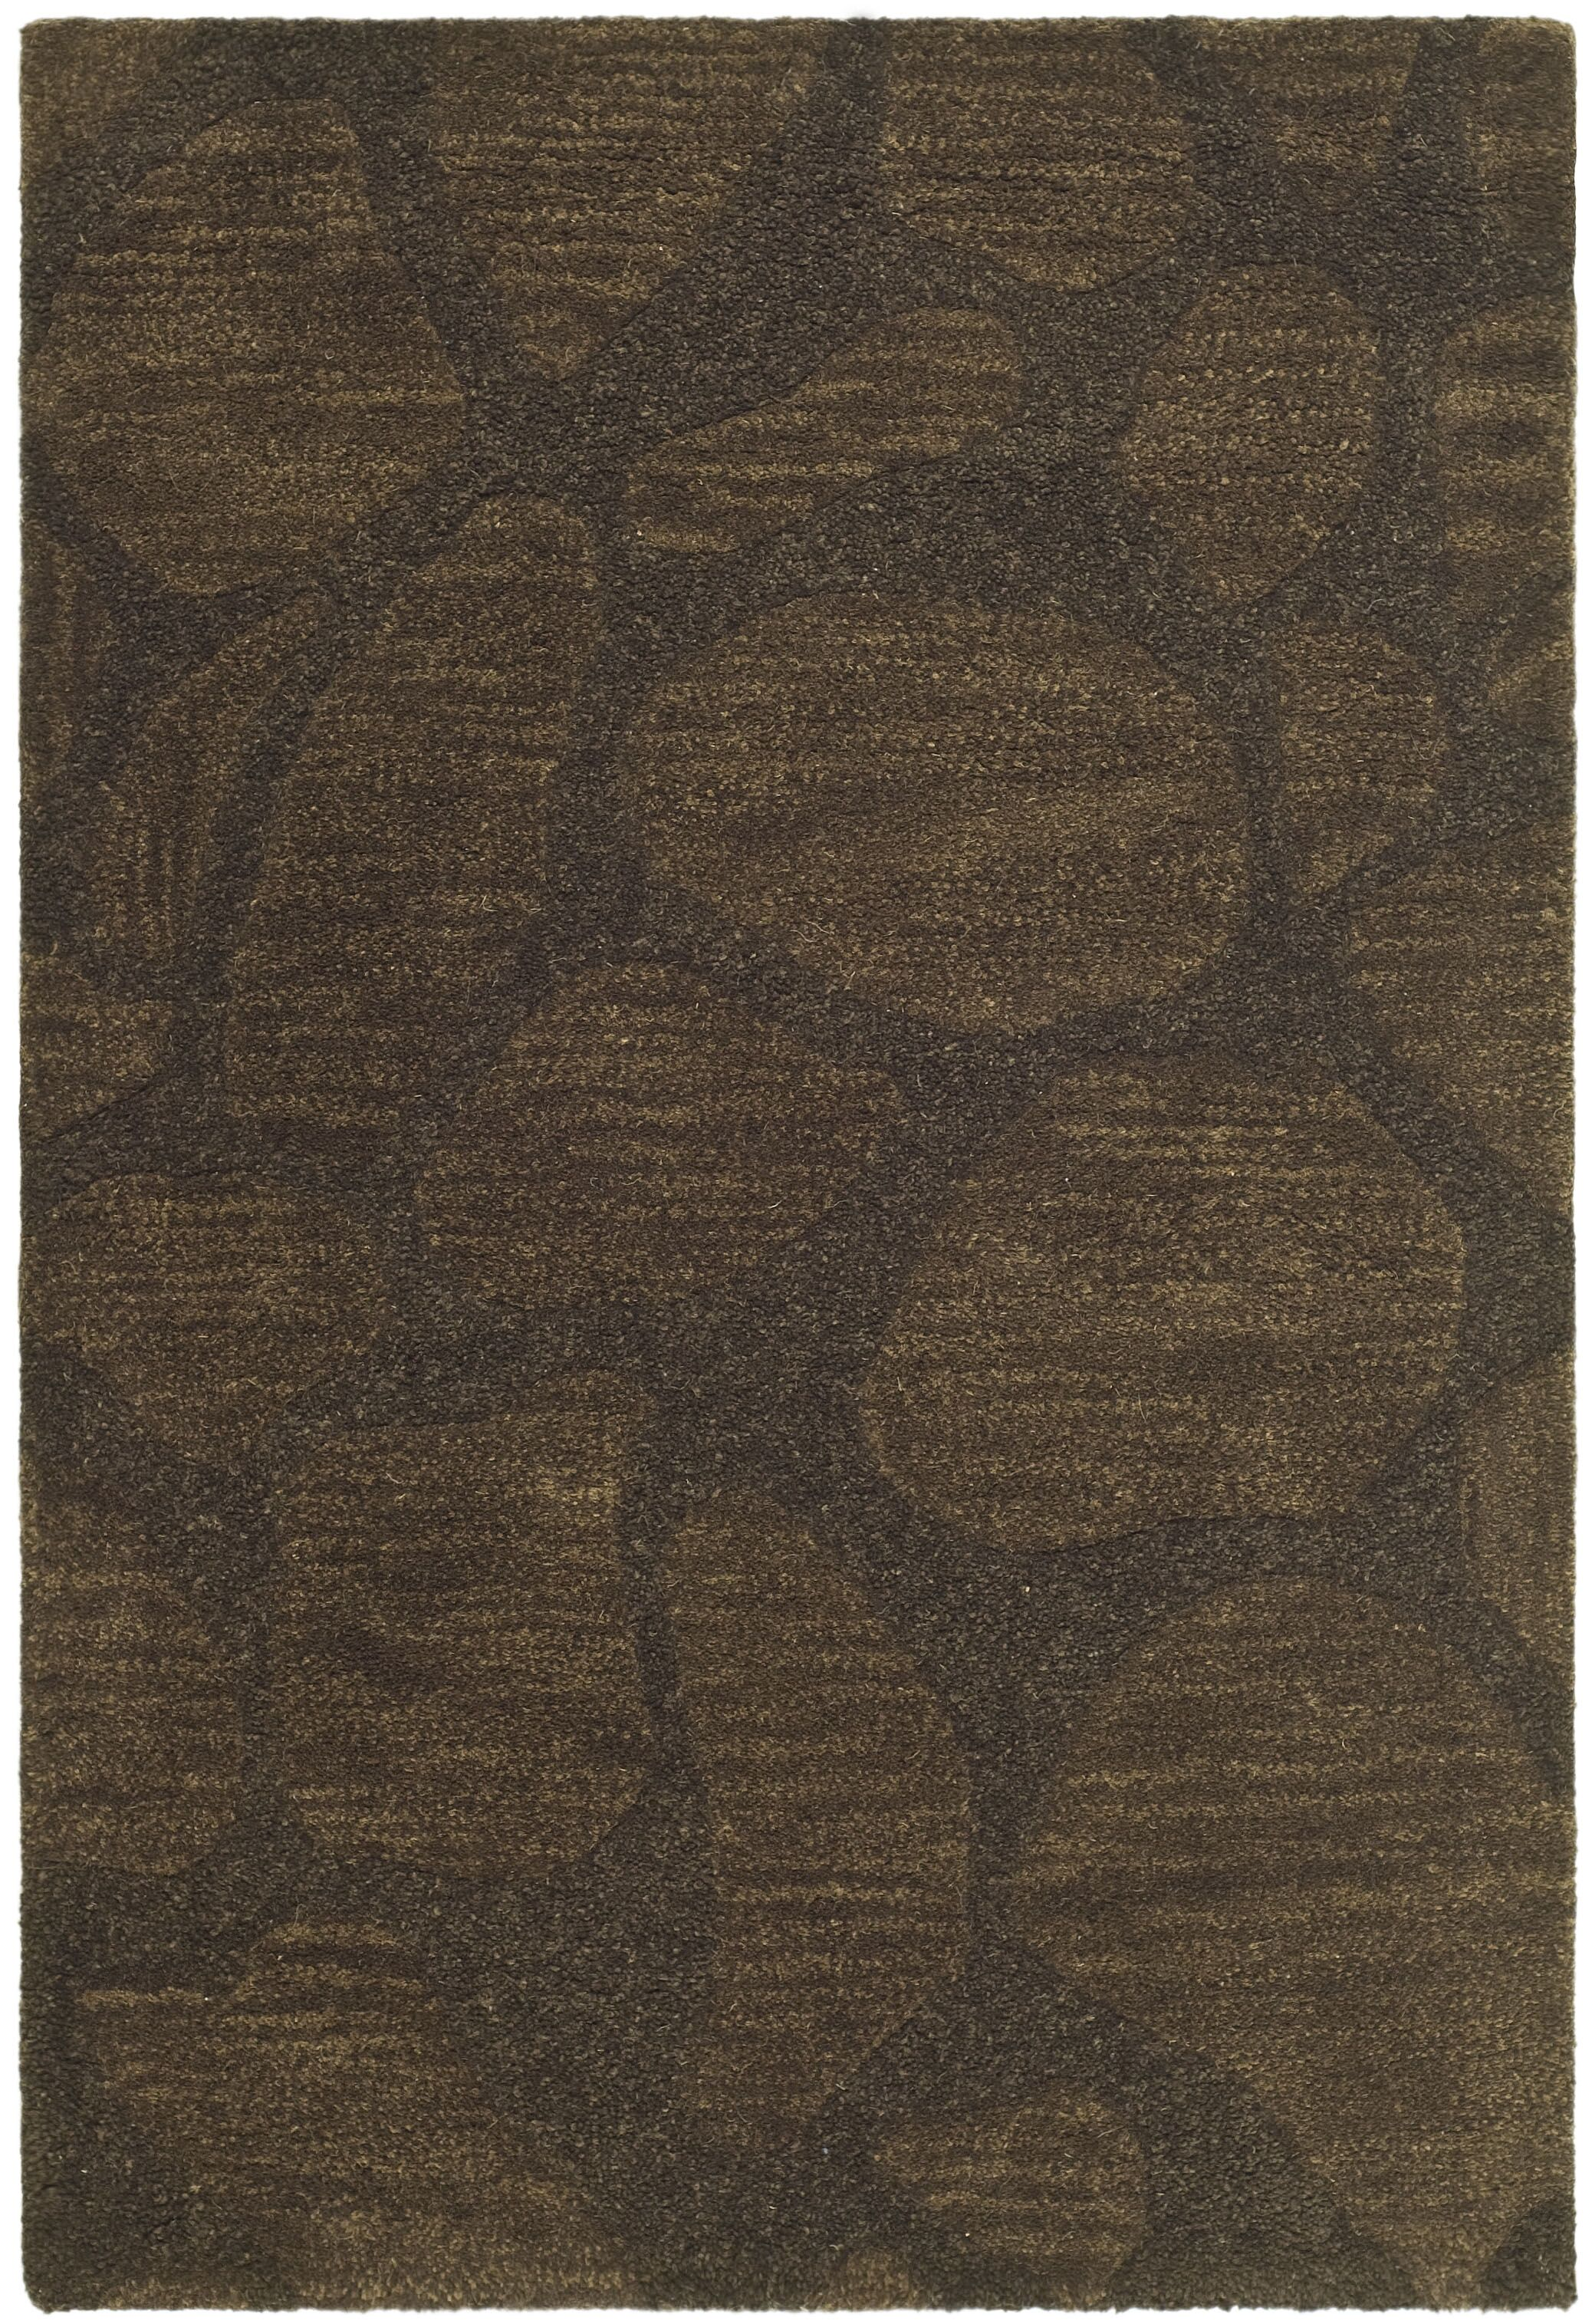 Boone Dark Brown Area Rug Rug Size: Rectangle 5' x 8'